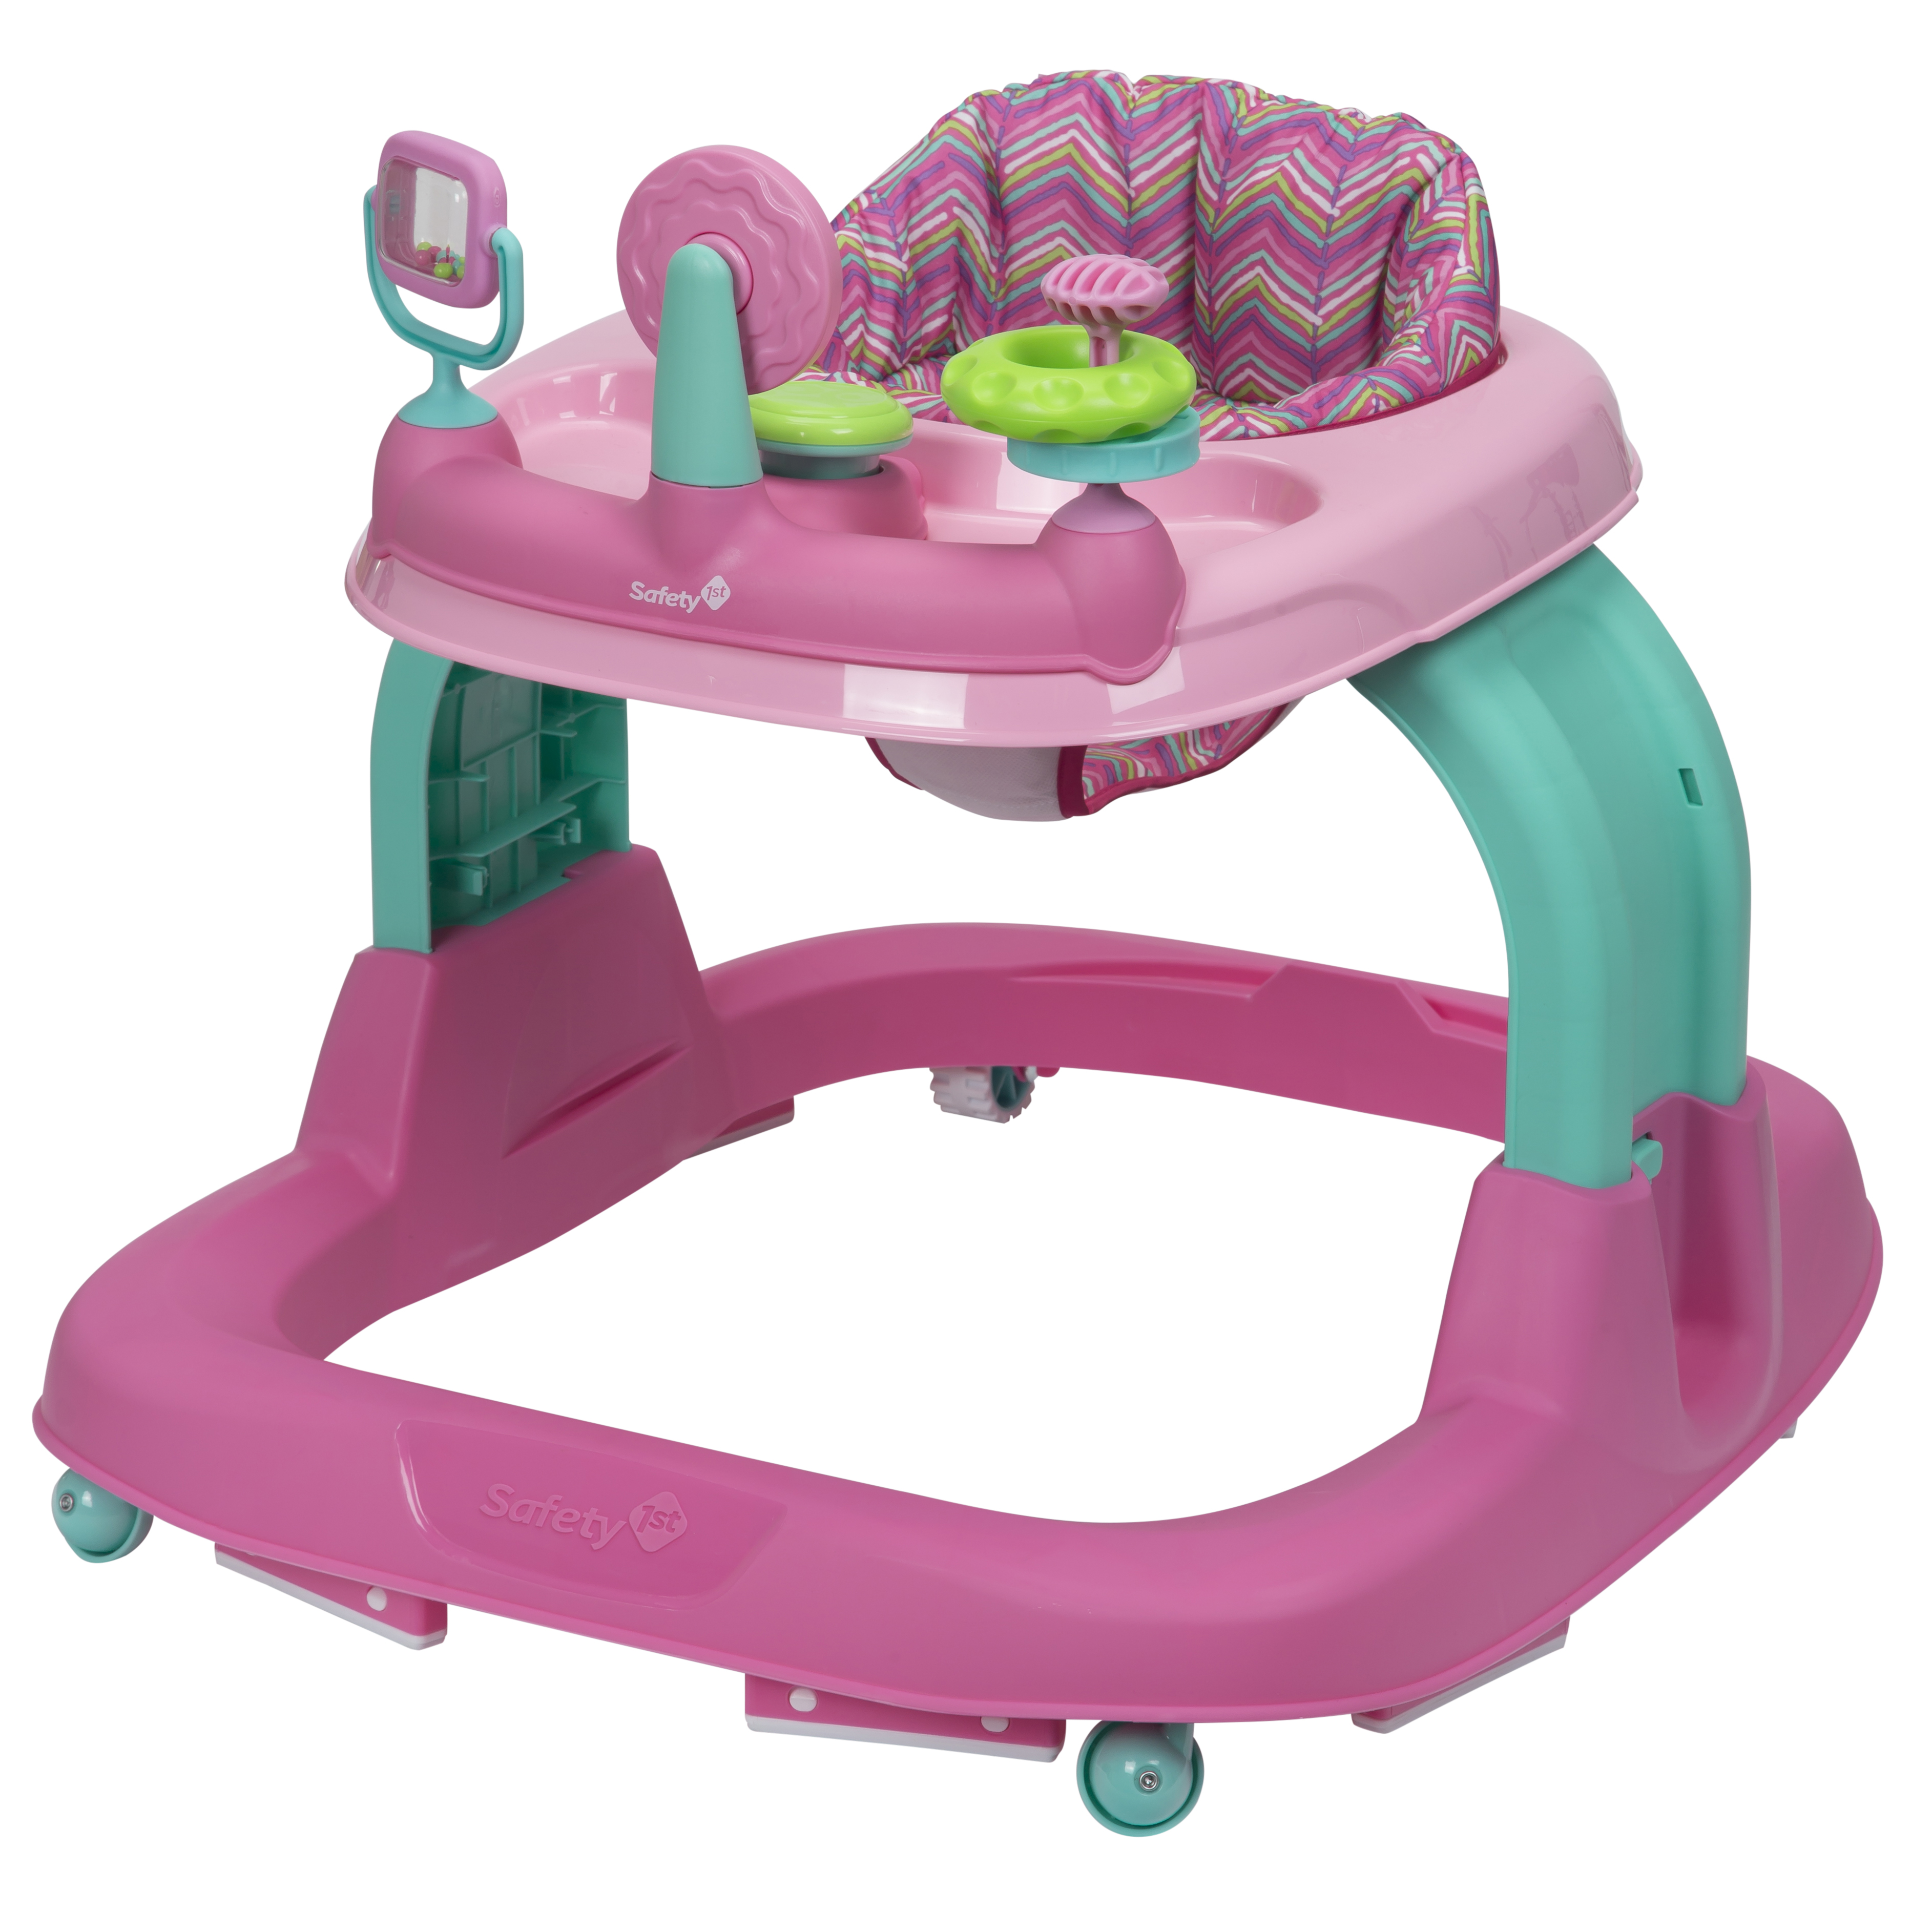 Safety 1st Ready, Set, Walk! Developmental Walker, Rosalie